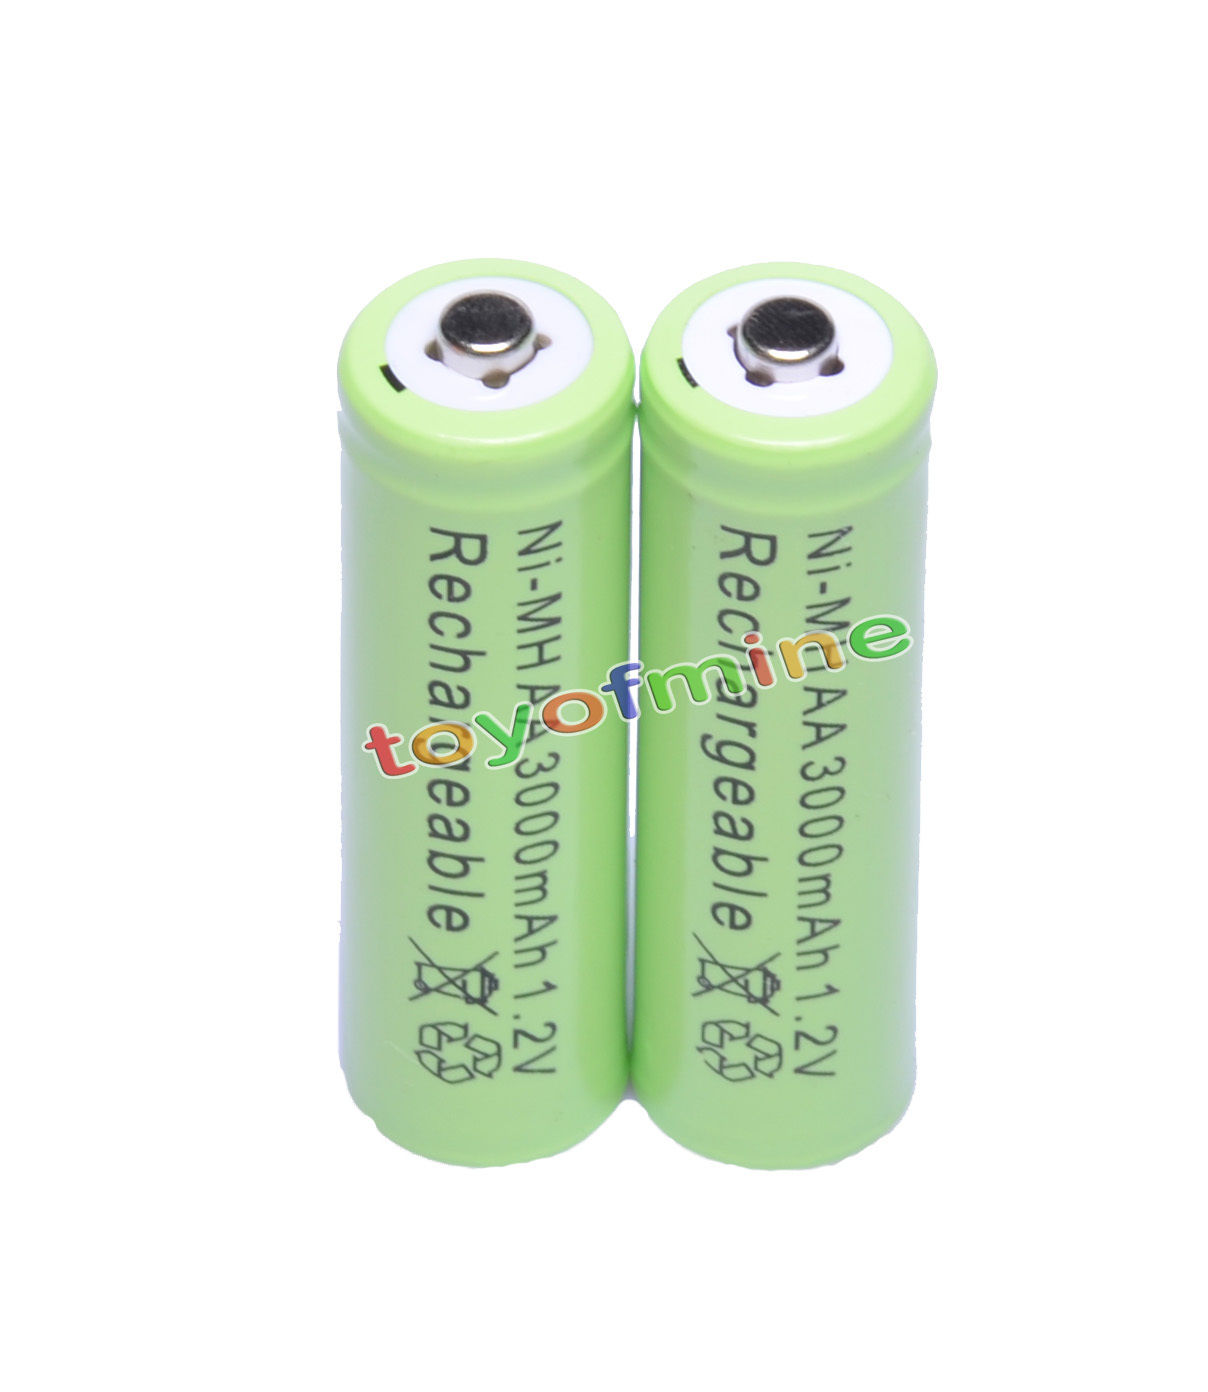 2xAA 3000mAh 1.2V batteries Bulk Nickel Hydride Rechargeable NI-MH Green